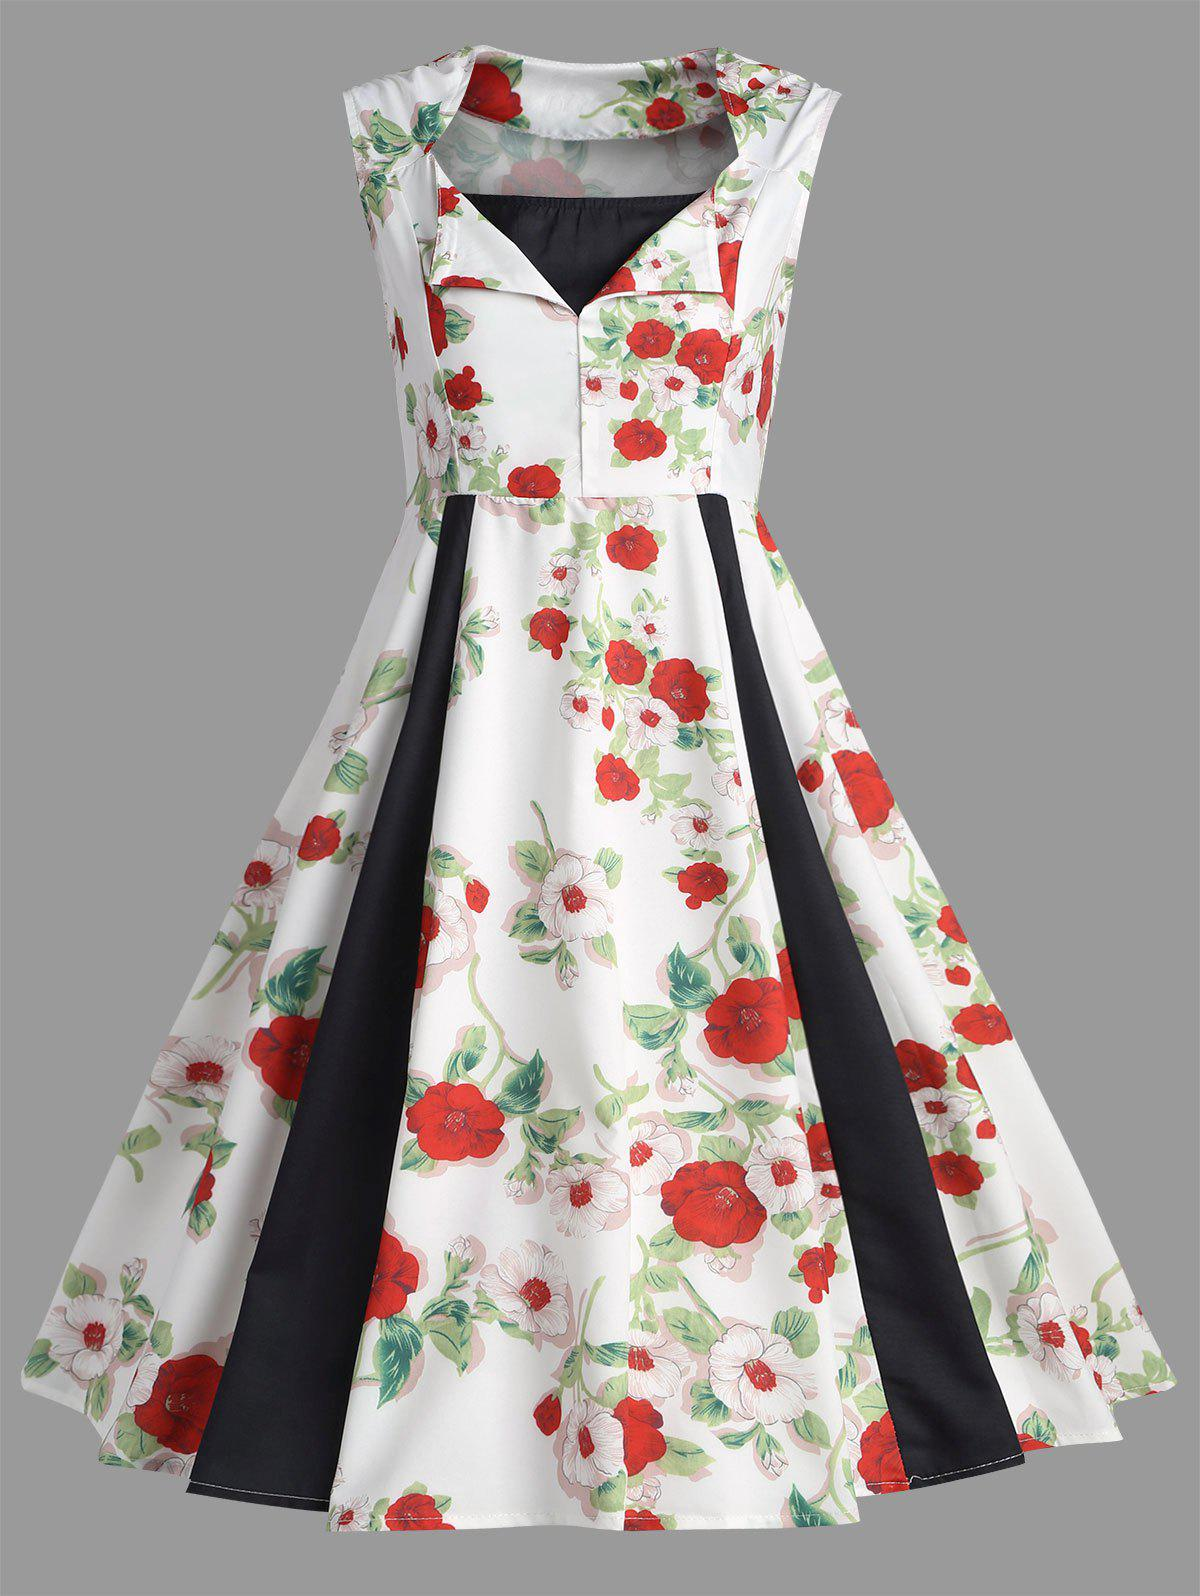 Patchwork Vintage Floral Print A Line Dress overbearing arrogance law anime one piece pvc action figure classic collection model garage kit doll toy